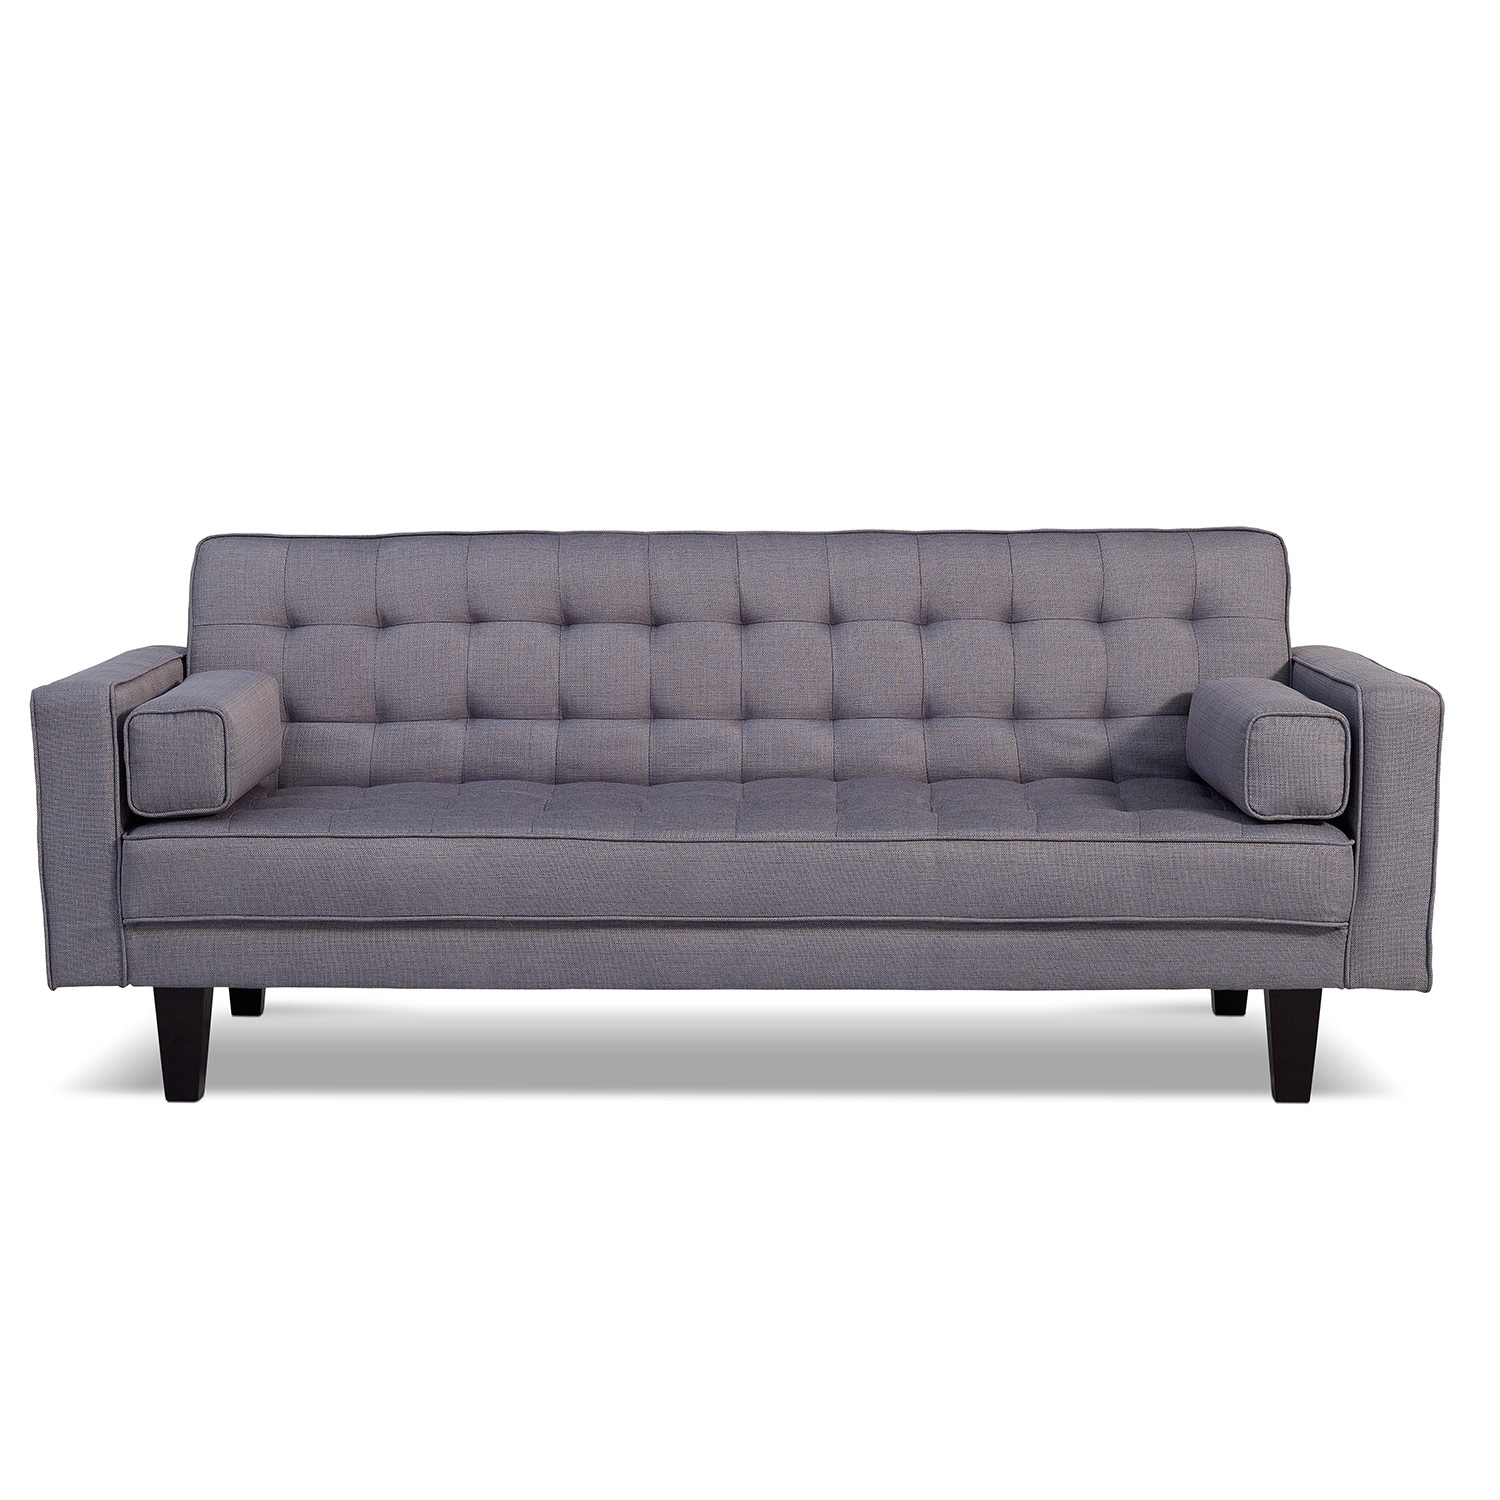 Britton Futon Sofa Bed Furniturecom